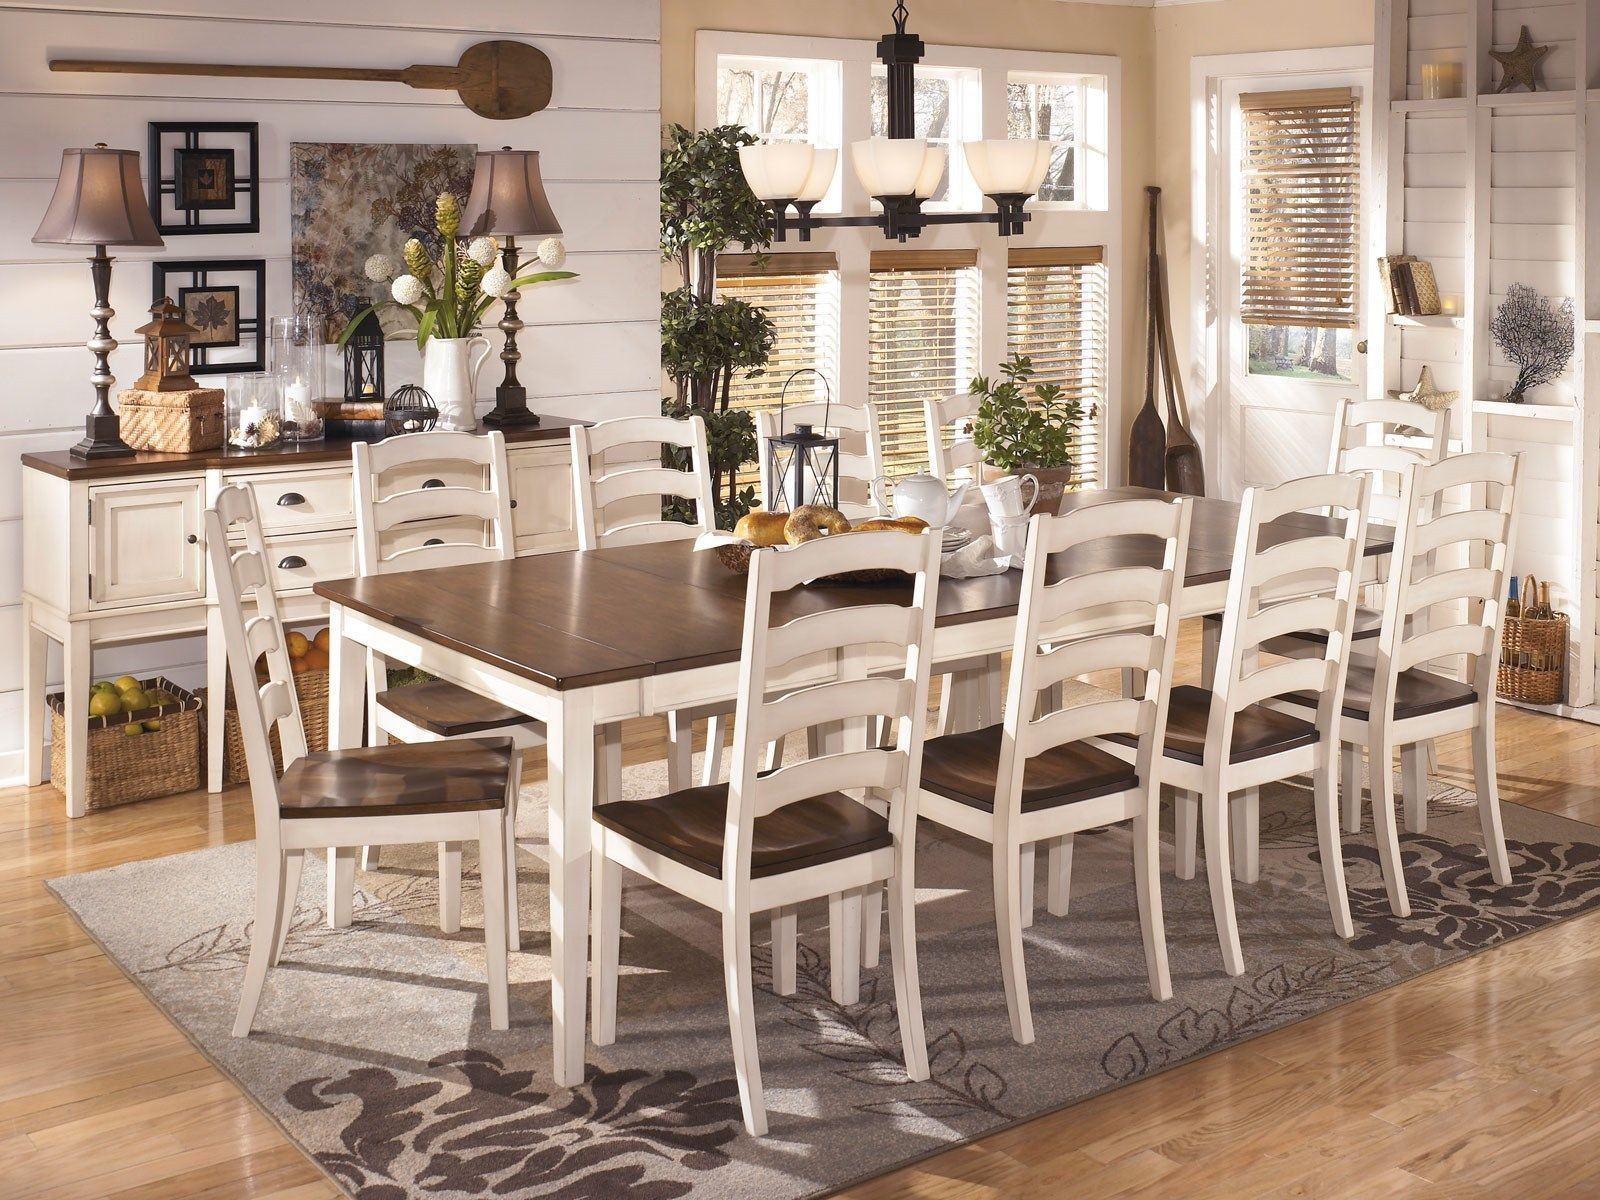 Holfield 11pcs Country Cottage Dining Set Store Retail 2500 Our